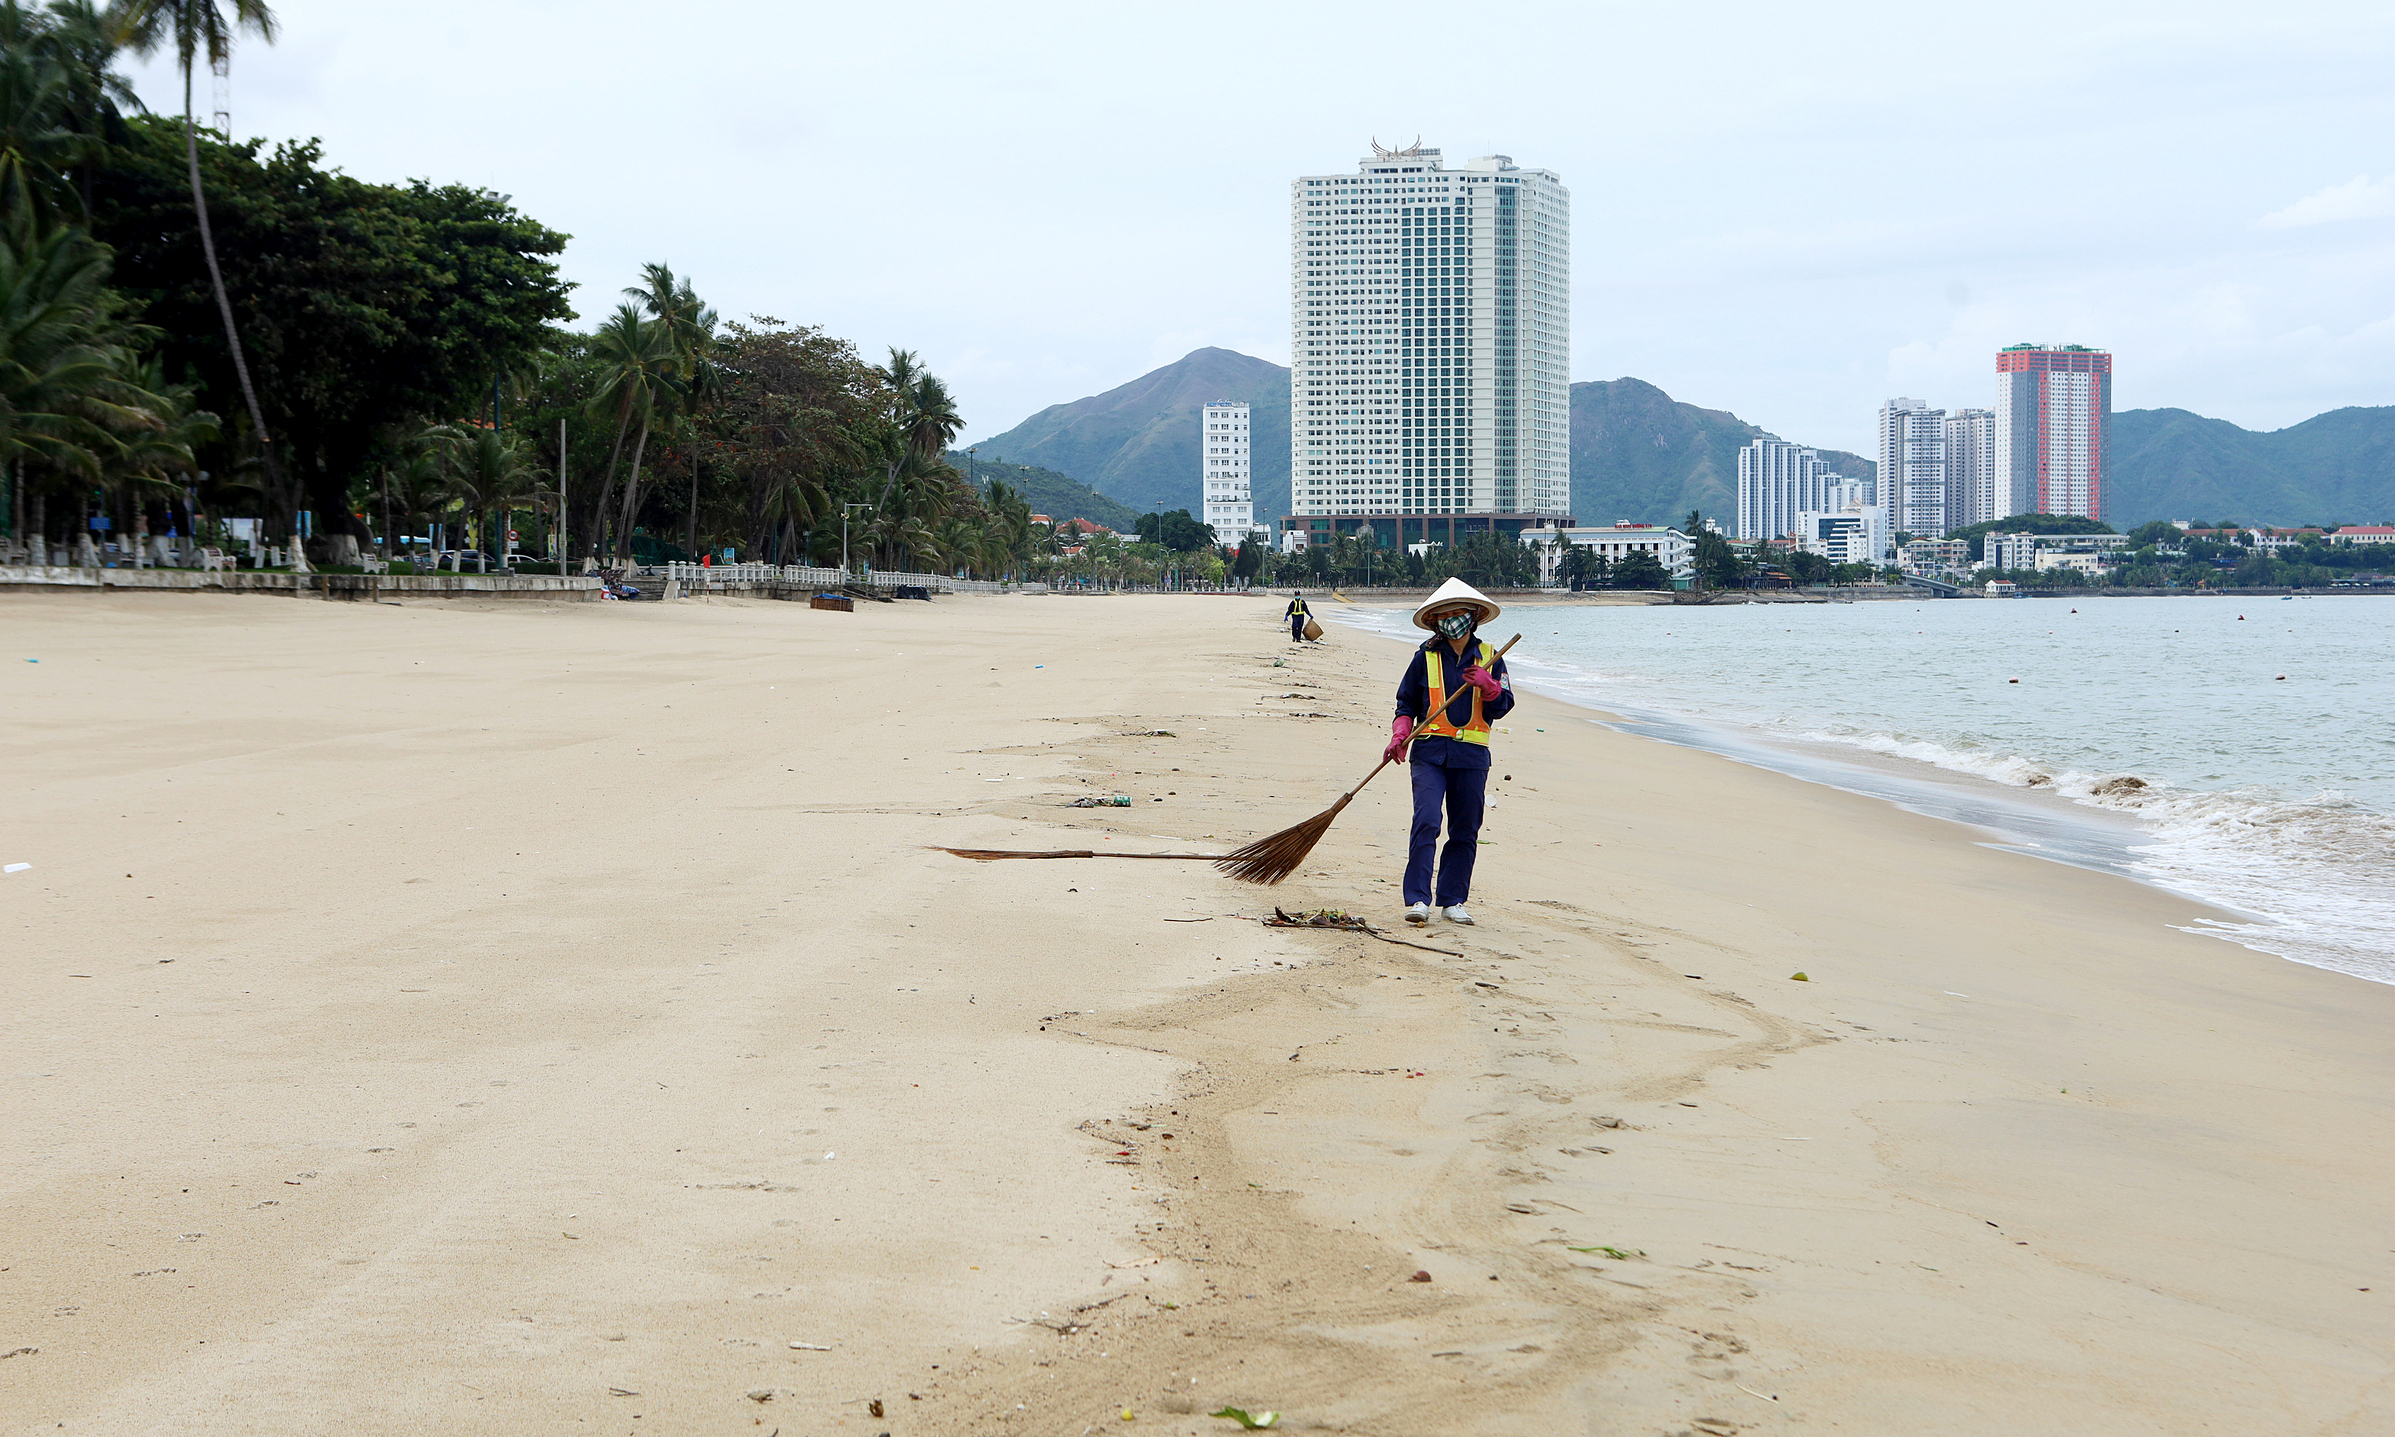 The beach of Nha Trang Town in Khanh Hoa Province is left deserted as the province imposes stringent social distancing rule in July, 2021. Photo by VnExpress/Xuan Ngoc